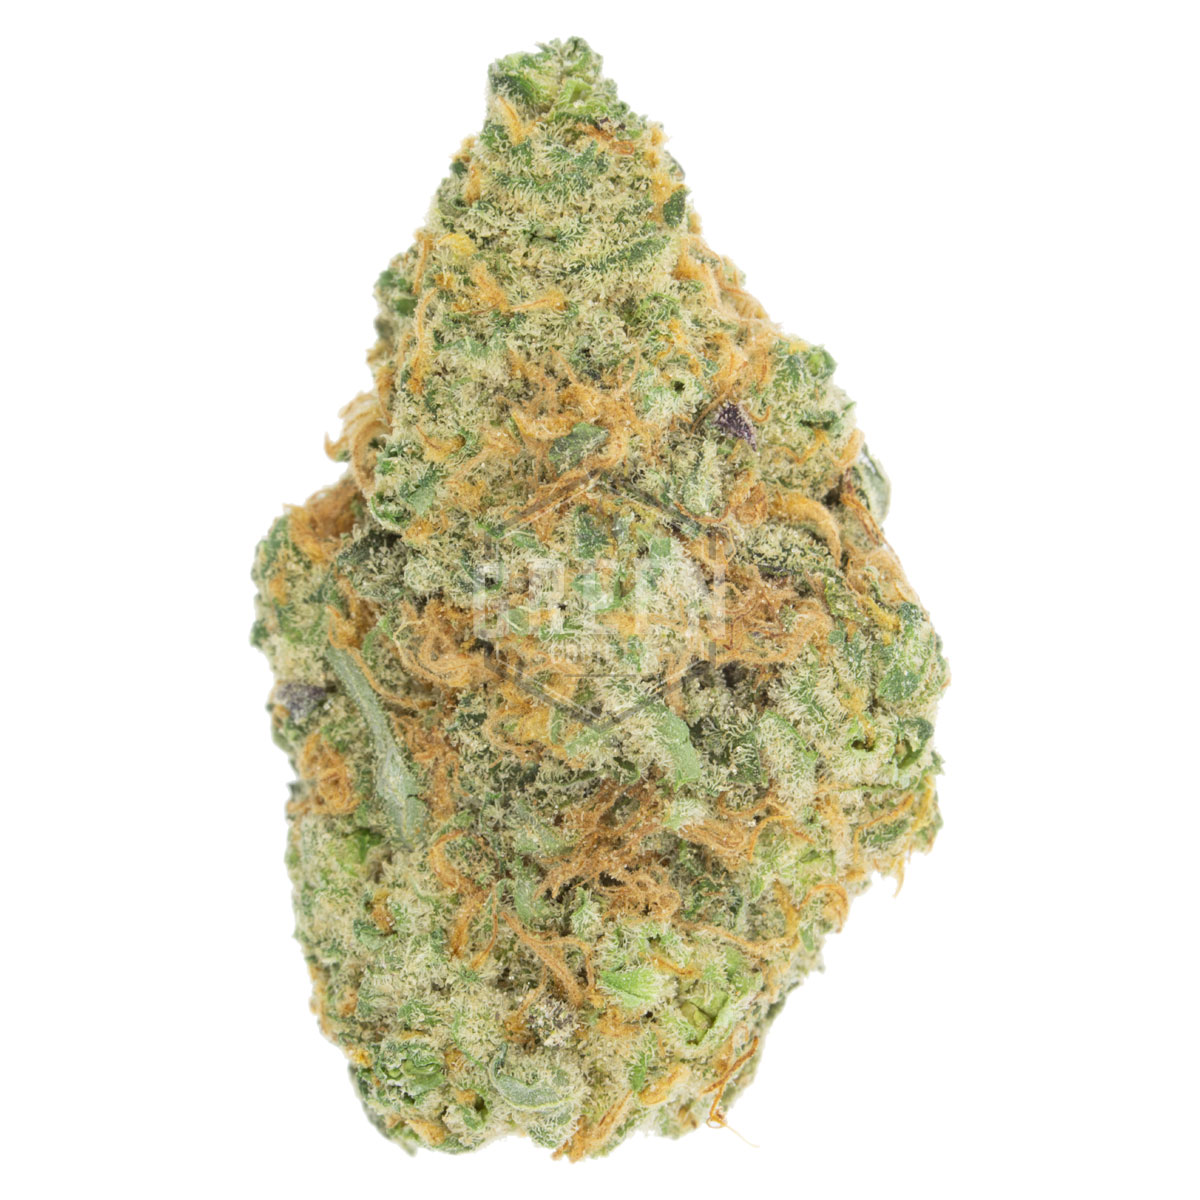 Big Buddha Cheese by Green Society - Image © 2018 Green Society. All Rights Reserved.